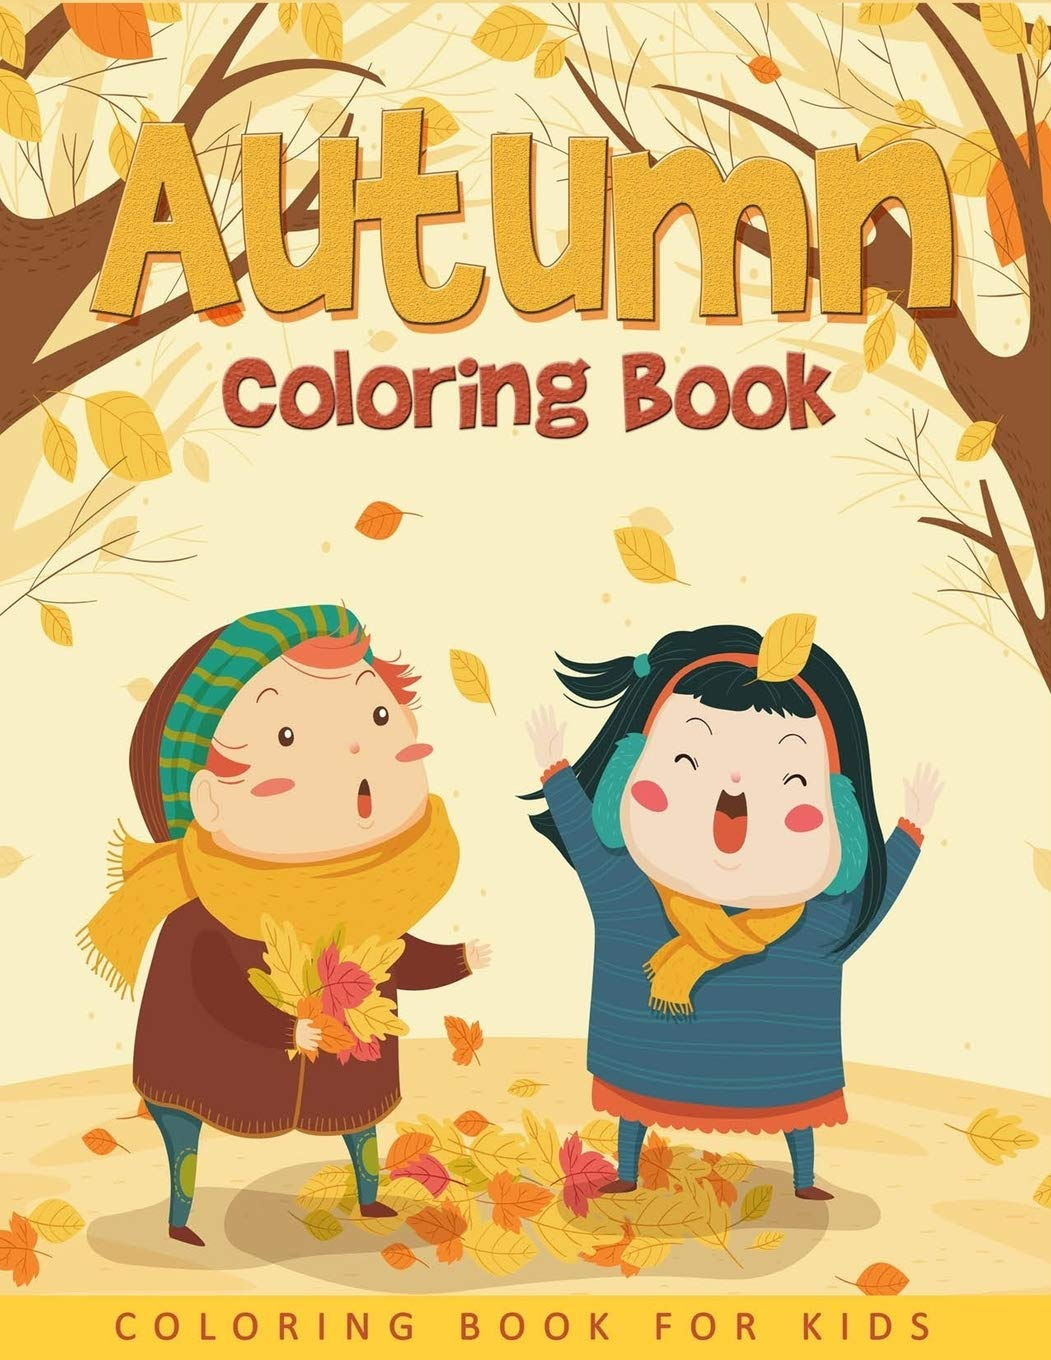 Autumn Coloring Book For Kids Easy And Cute Autumn Coloring Pages For Kids Toddlers And Preschool Book Ernest Creative Coloring 9781700499042 Amazon Com Books